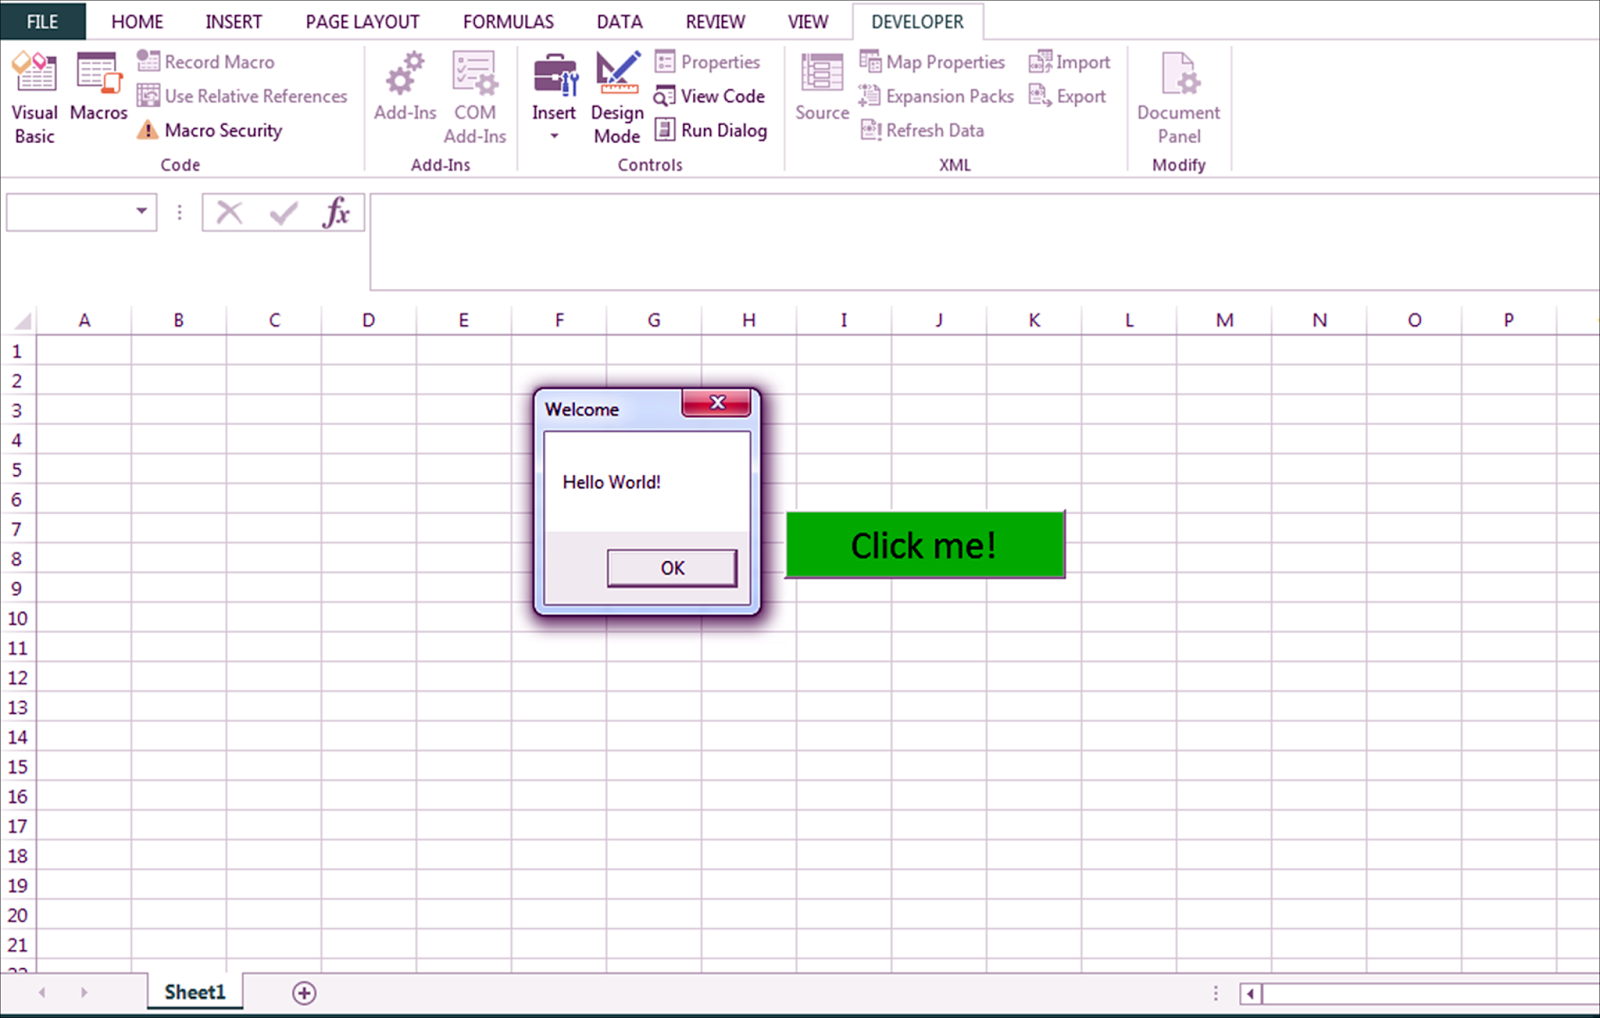 How to create a message box in excel using VBA and pop up whenever ...